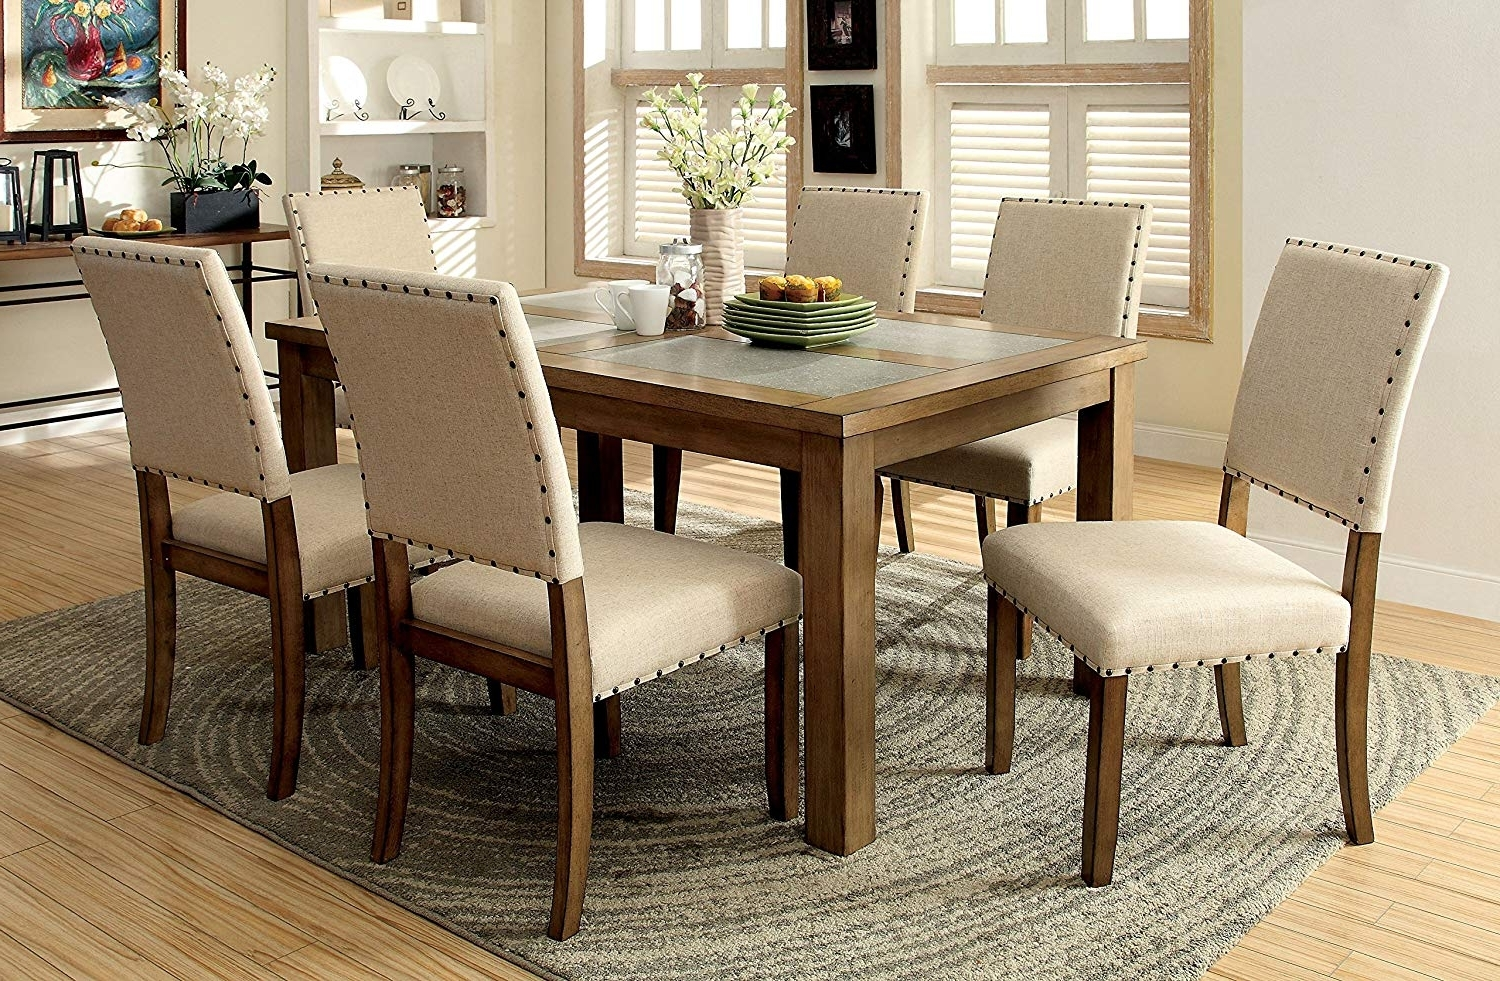 Valencia 72 Inch 6 Piece Dining Sets with Most Popular Amazon - Furniture Of America Lucena 7-Piece Transitional Dining